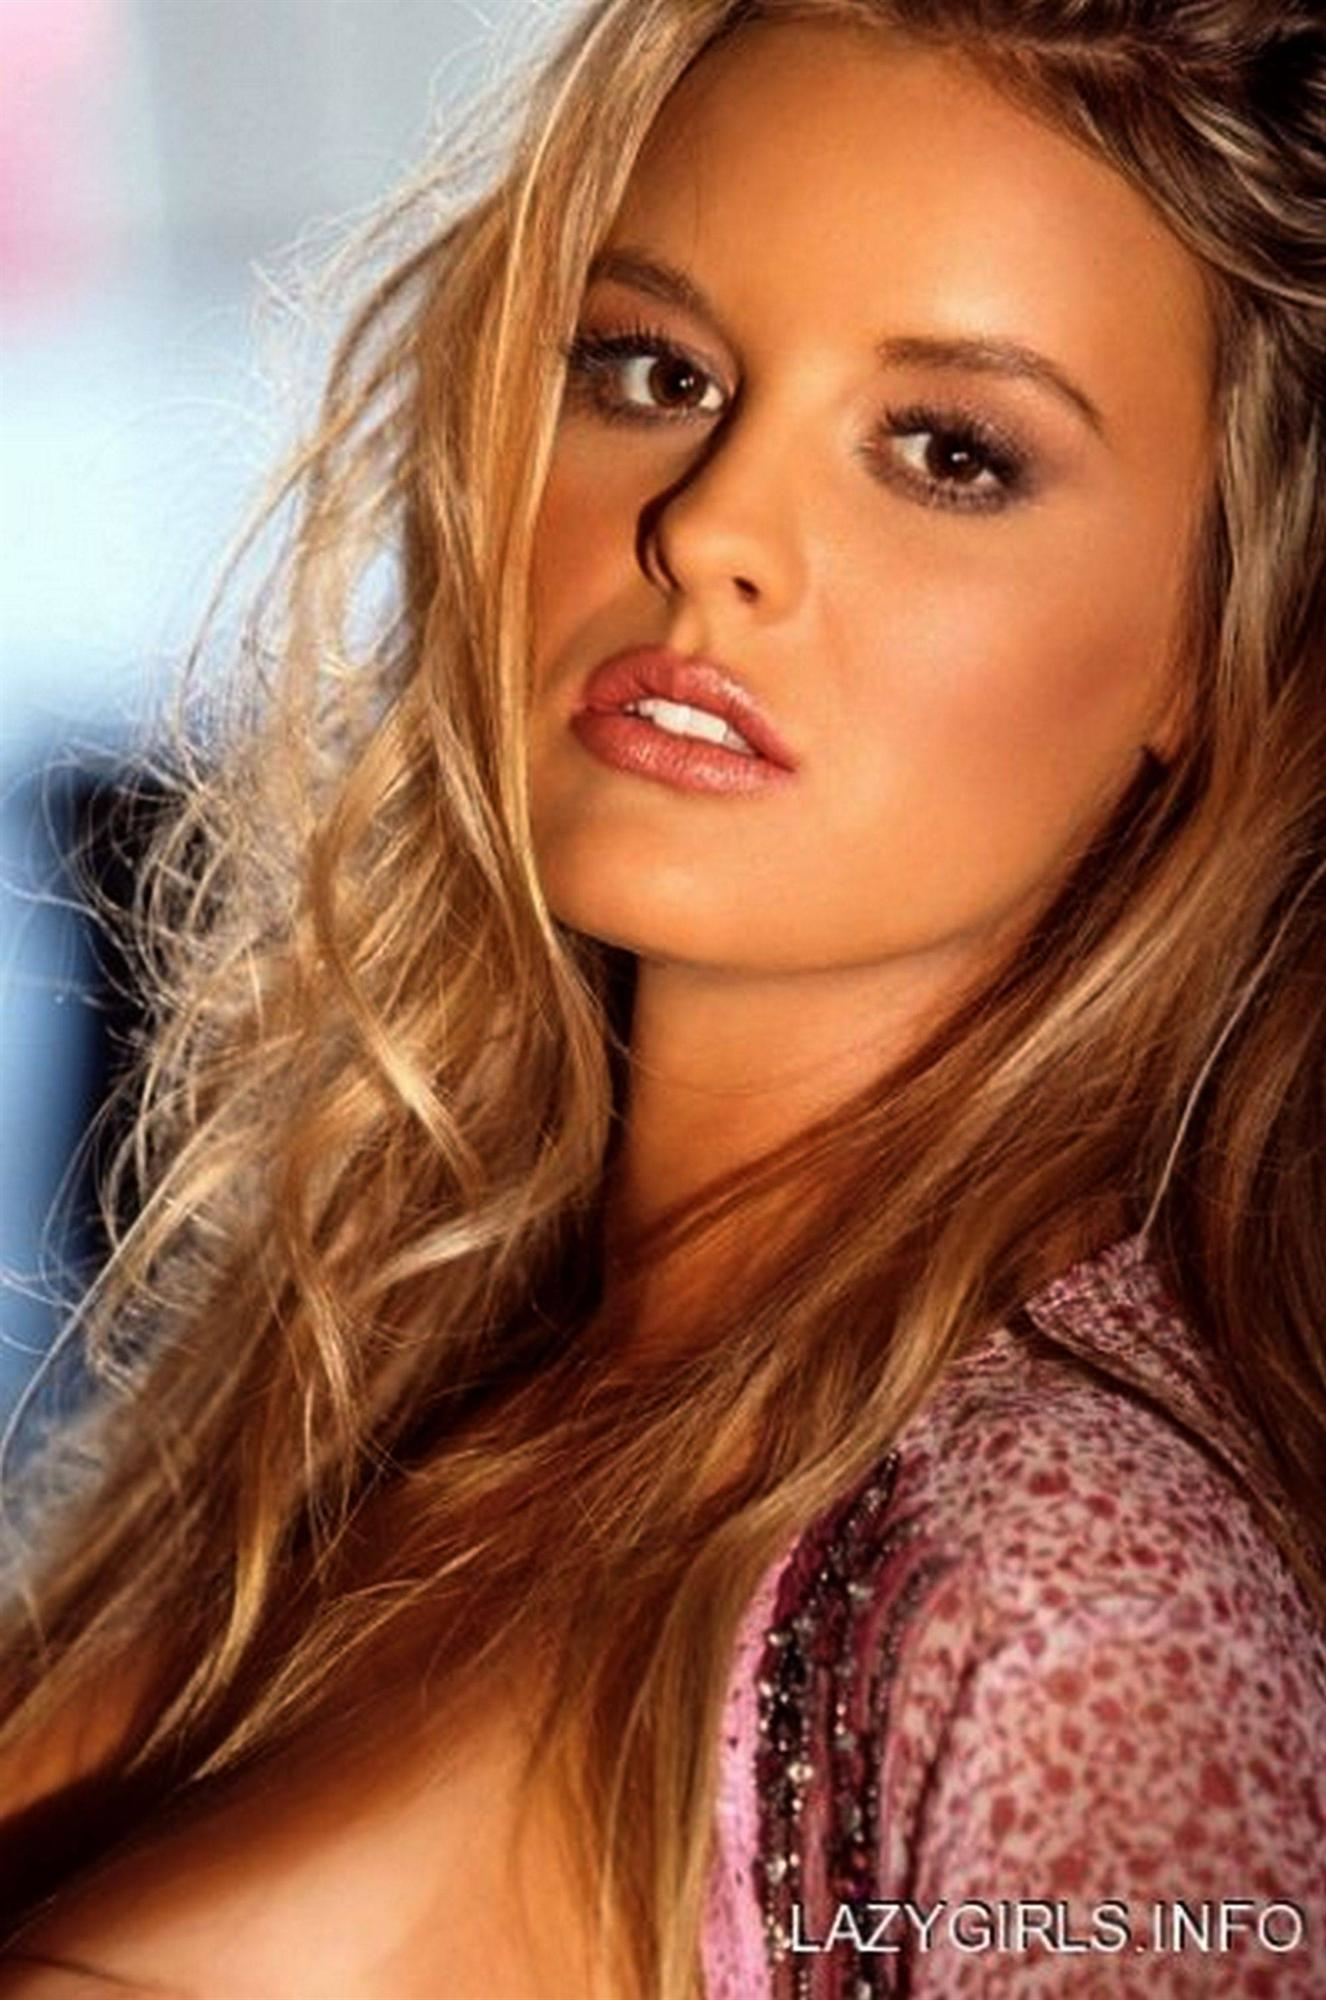 Sarah Elizabeth is an American model. She was Playboy's Cyber Girl of the Week in the 4th week of December 2005, the Cyber Girl of the Month in April 2006, and  the Playmate of the Month for the November 2006 issue of Playboy.